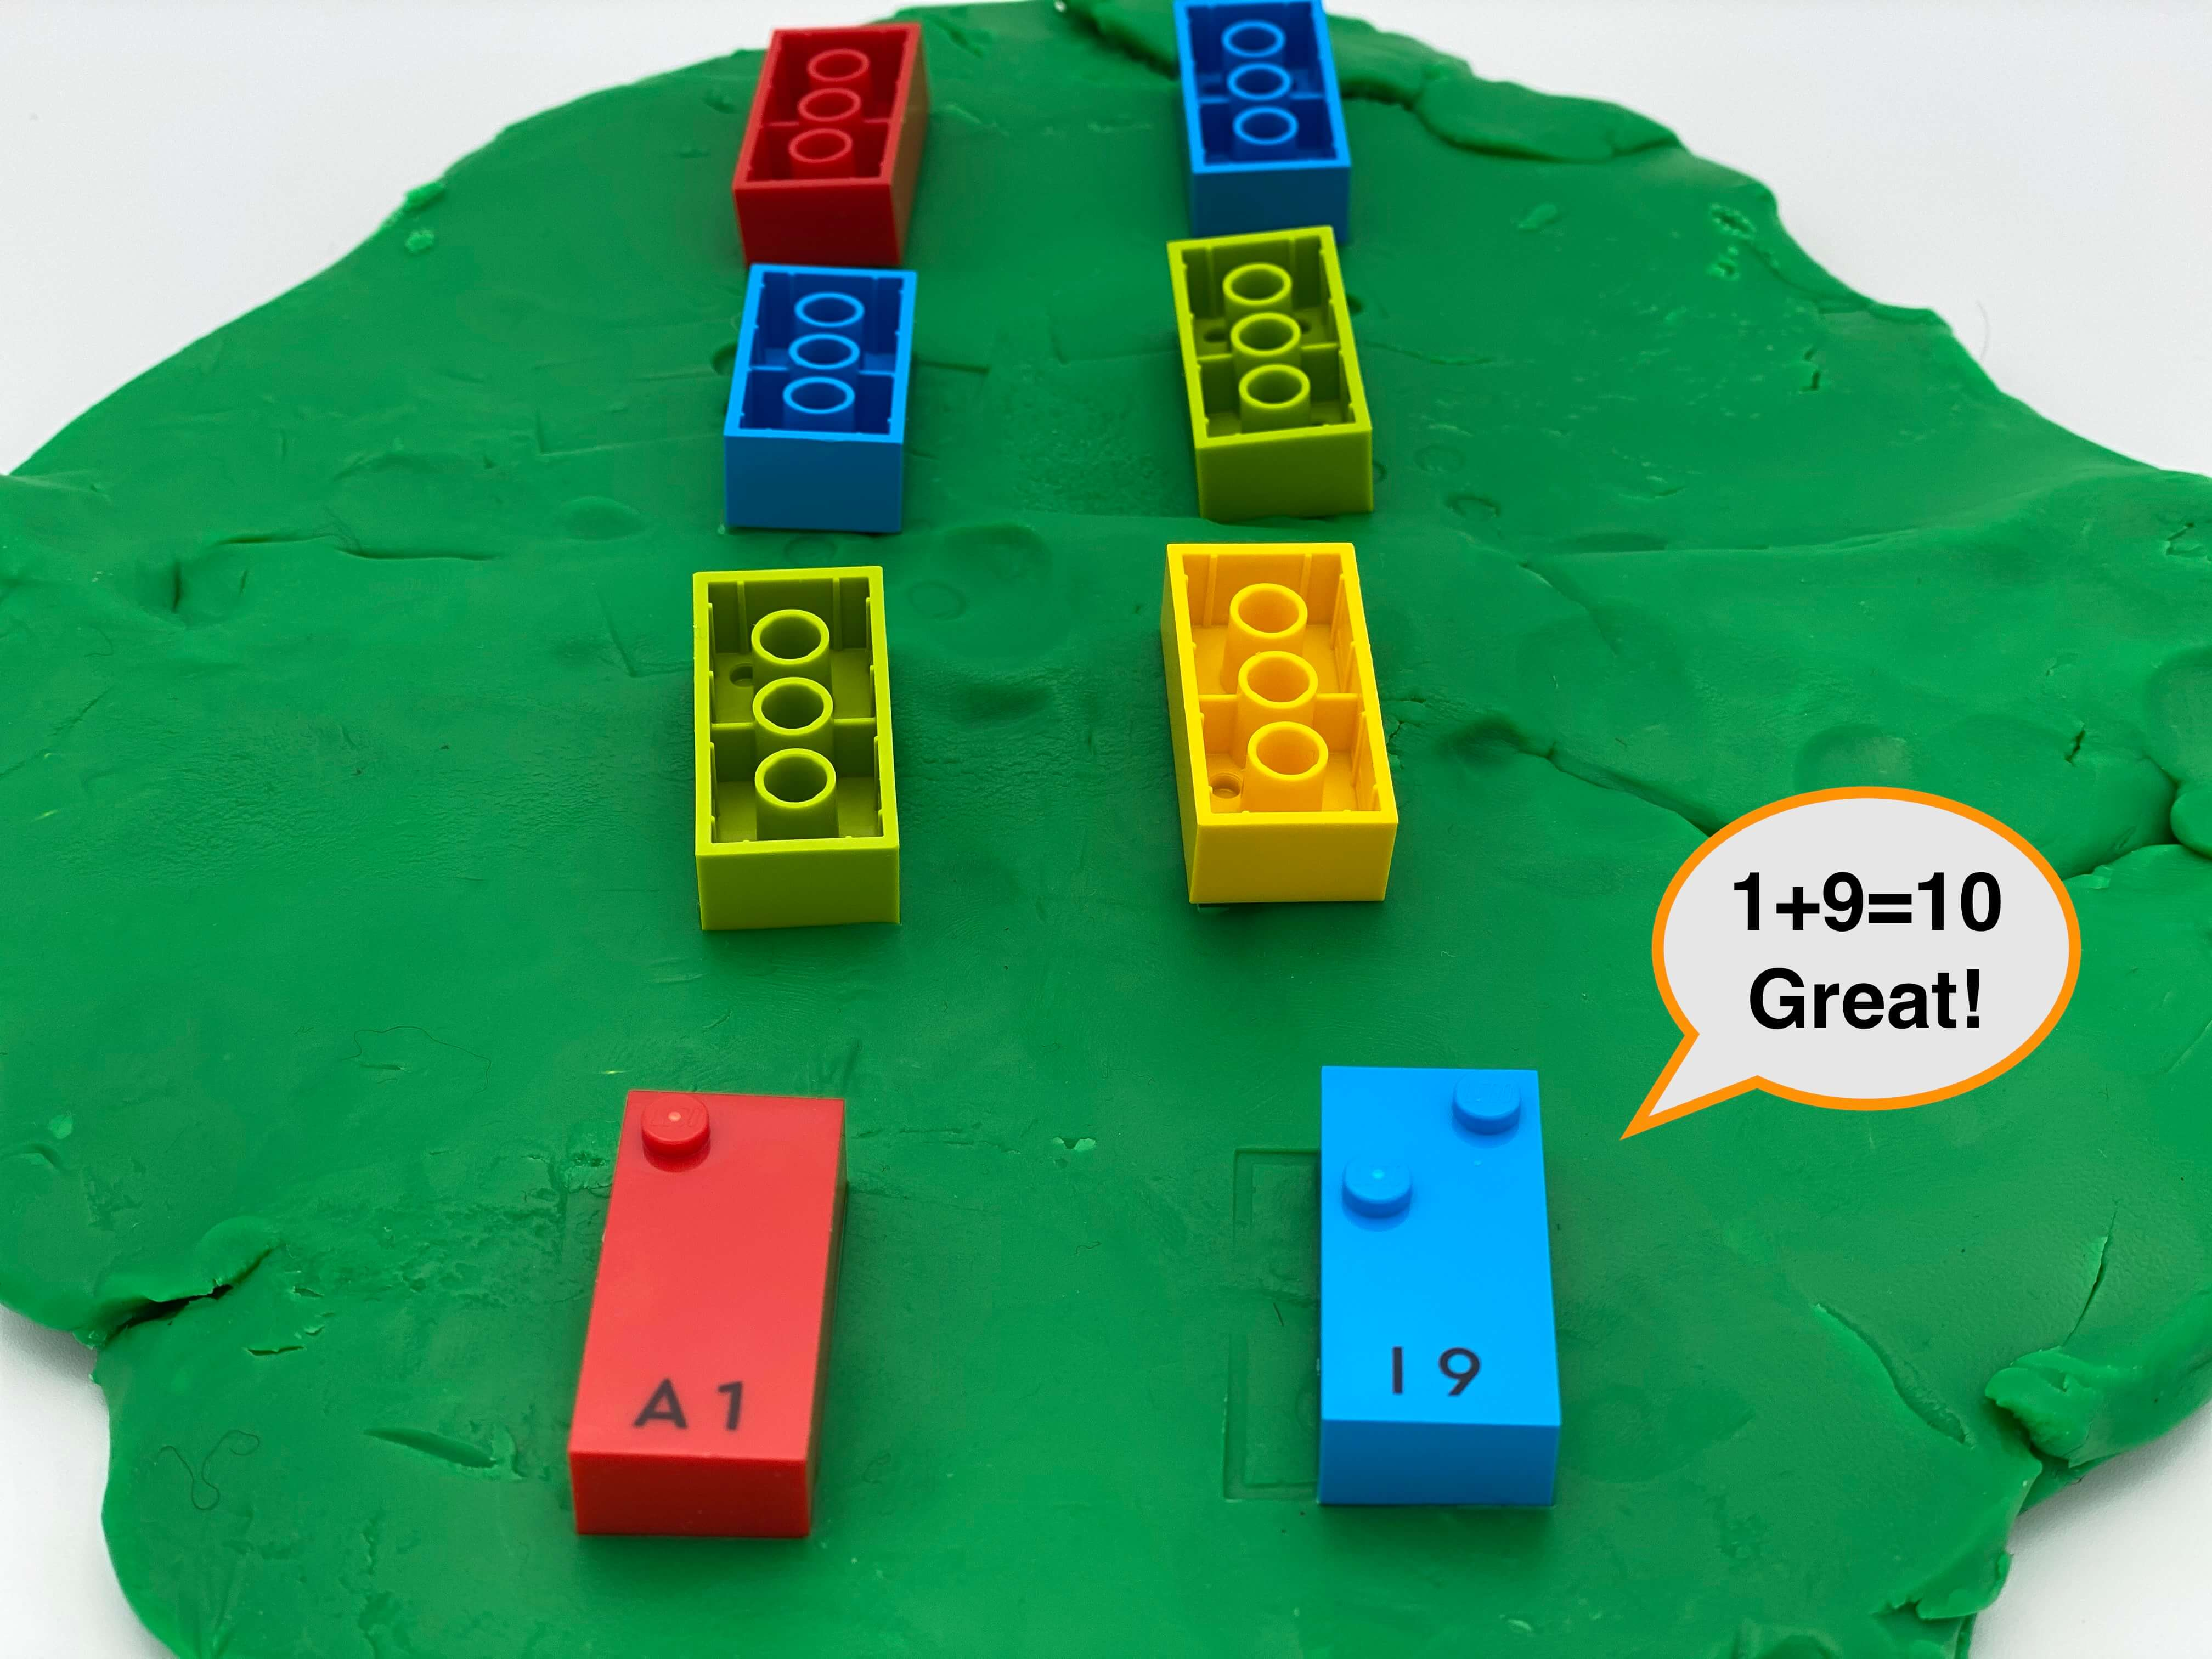 A disc of play dough with 8 bricks: 6 upside-down, 2 right-side up showing number 1 and 9.A speech bubble says 1+9=10 Great!.